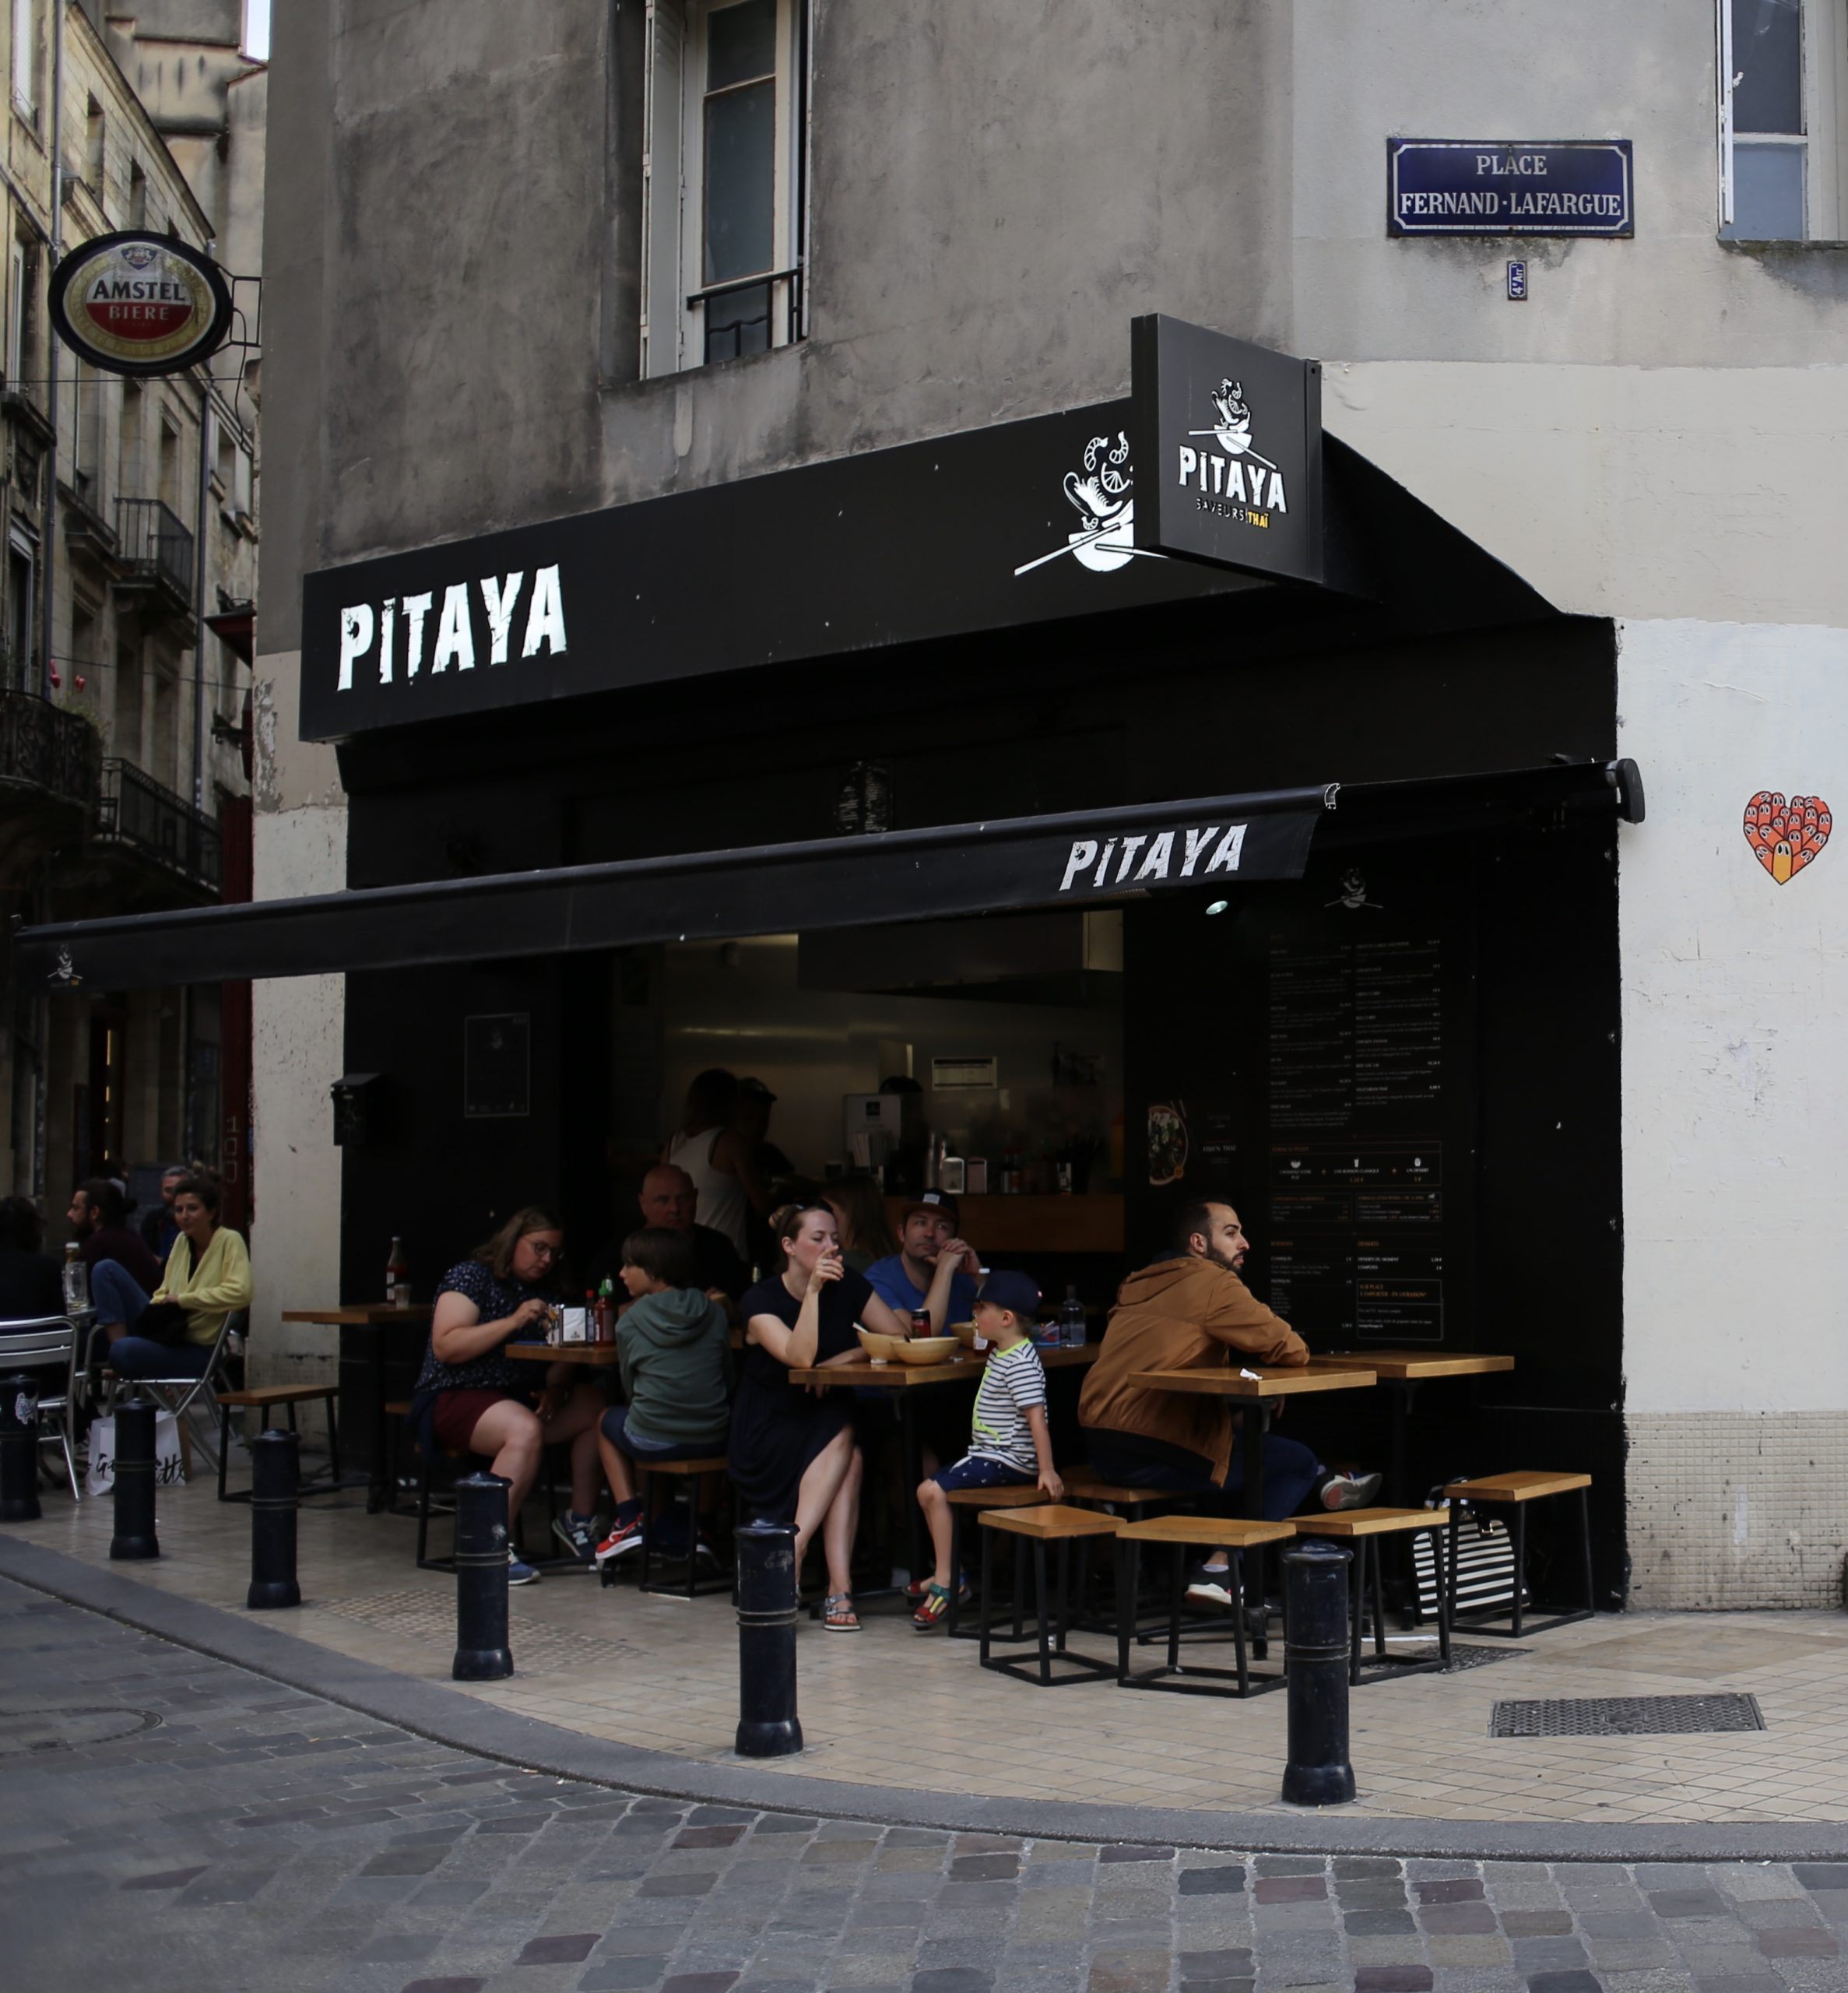 Pitaya, Place Fernand-Lafargue, Bordeaux, France